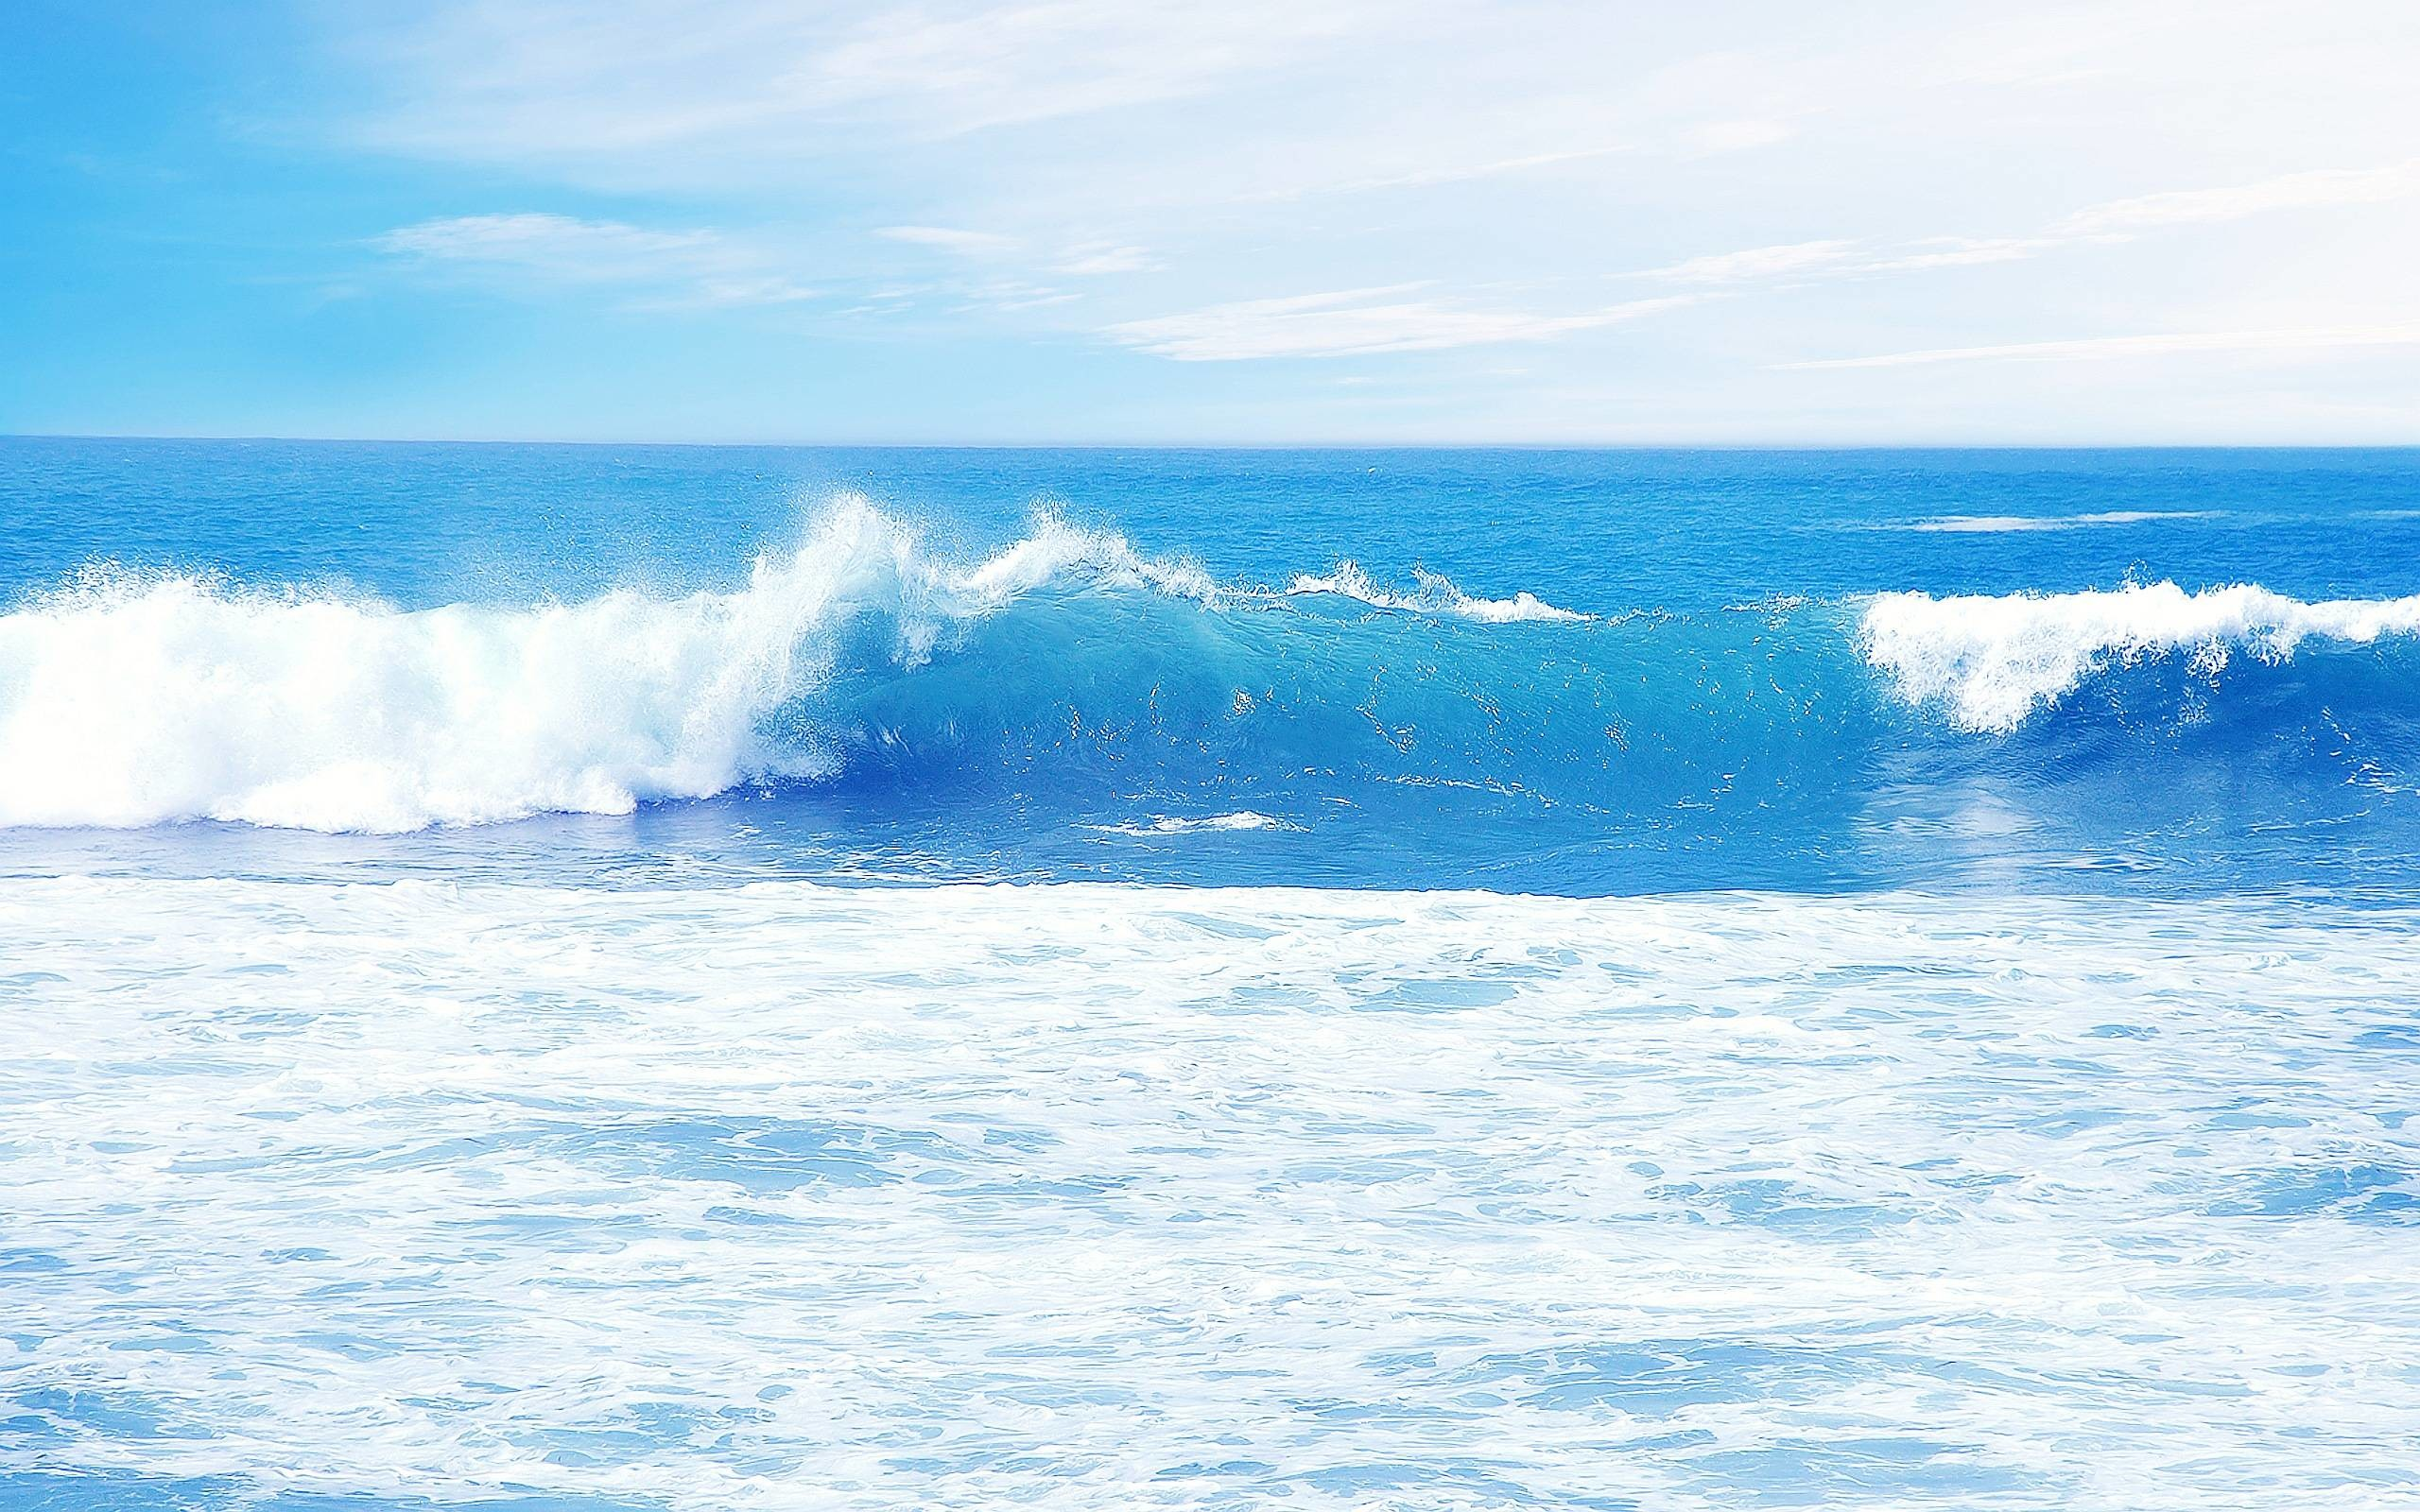 2560x1600 Blue Ocean Waves Wallpapers | Pictures